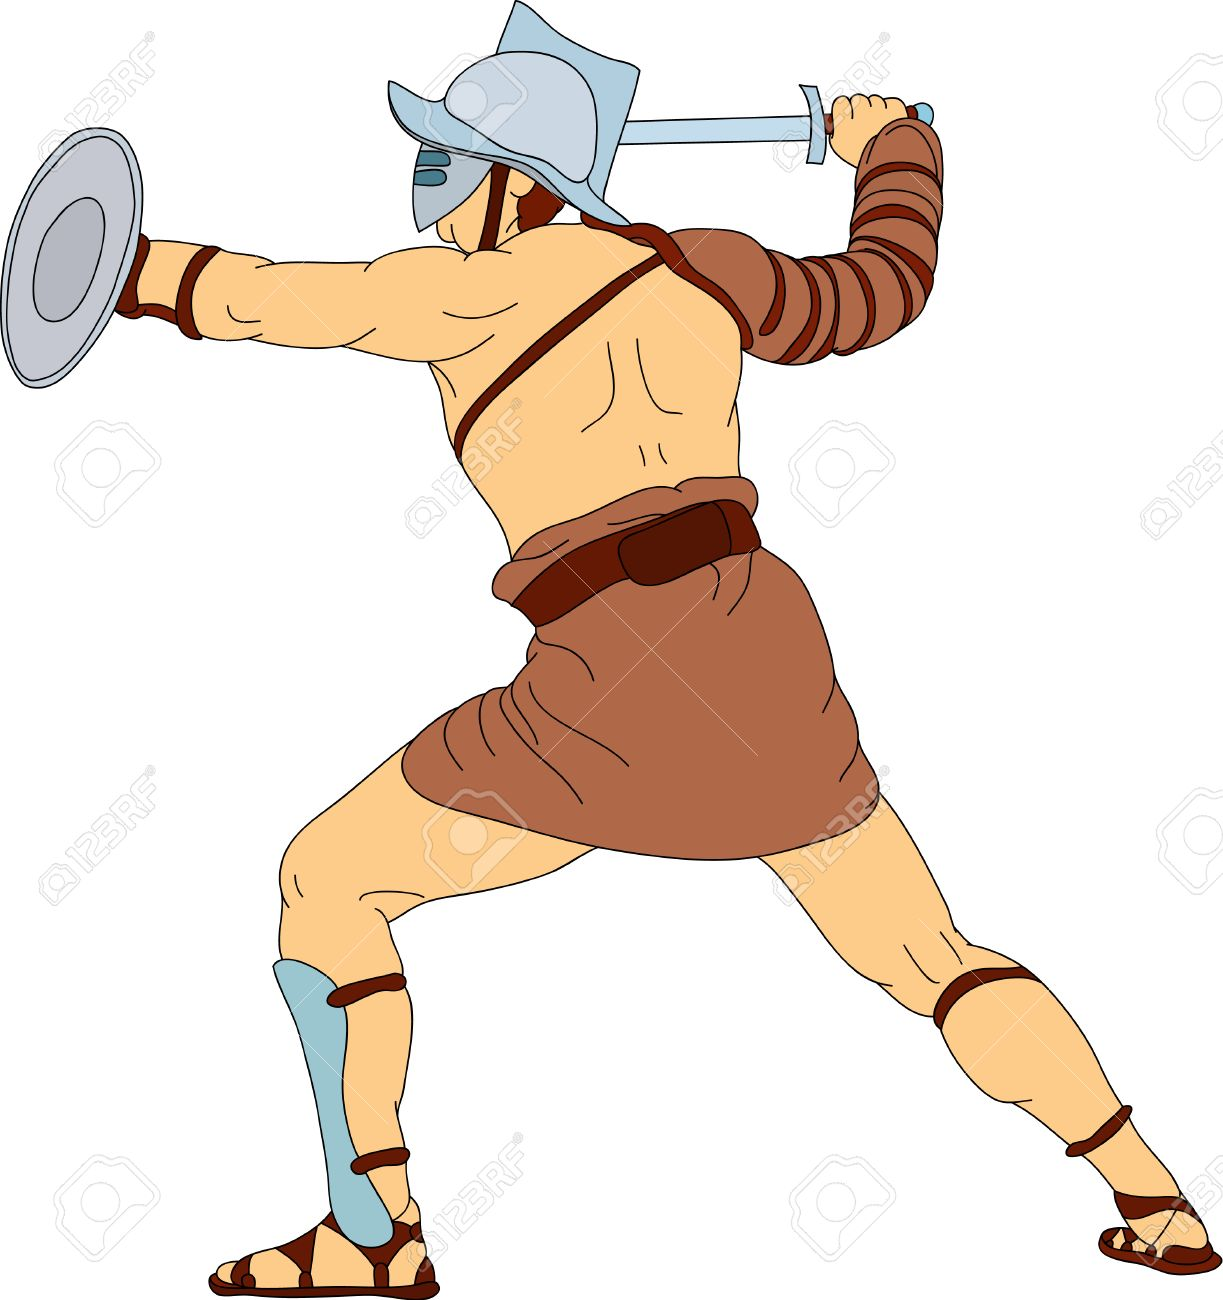 a Roman gladiator fighting.